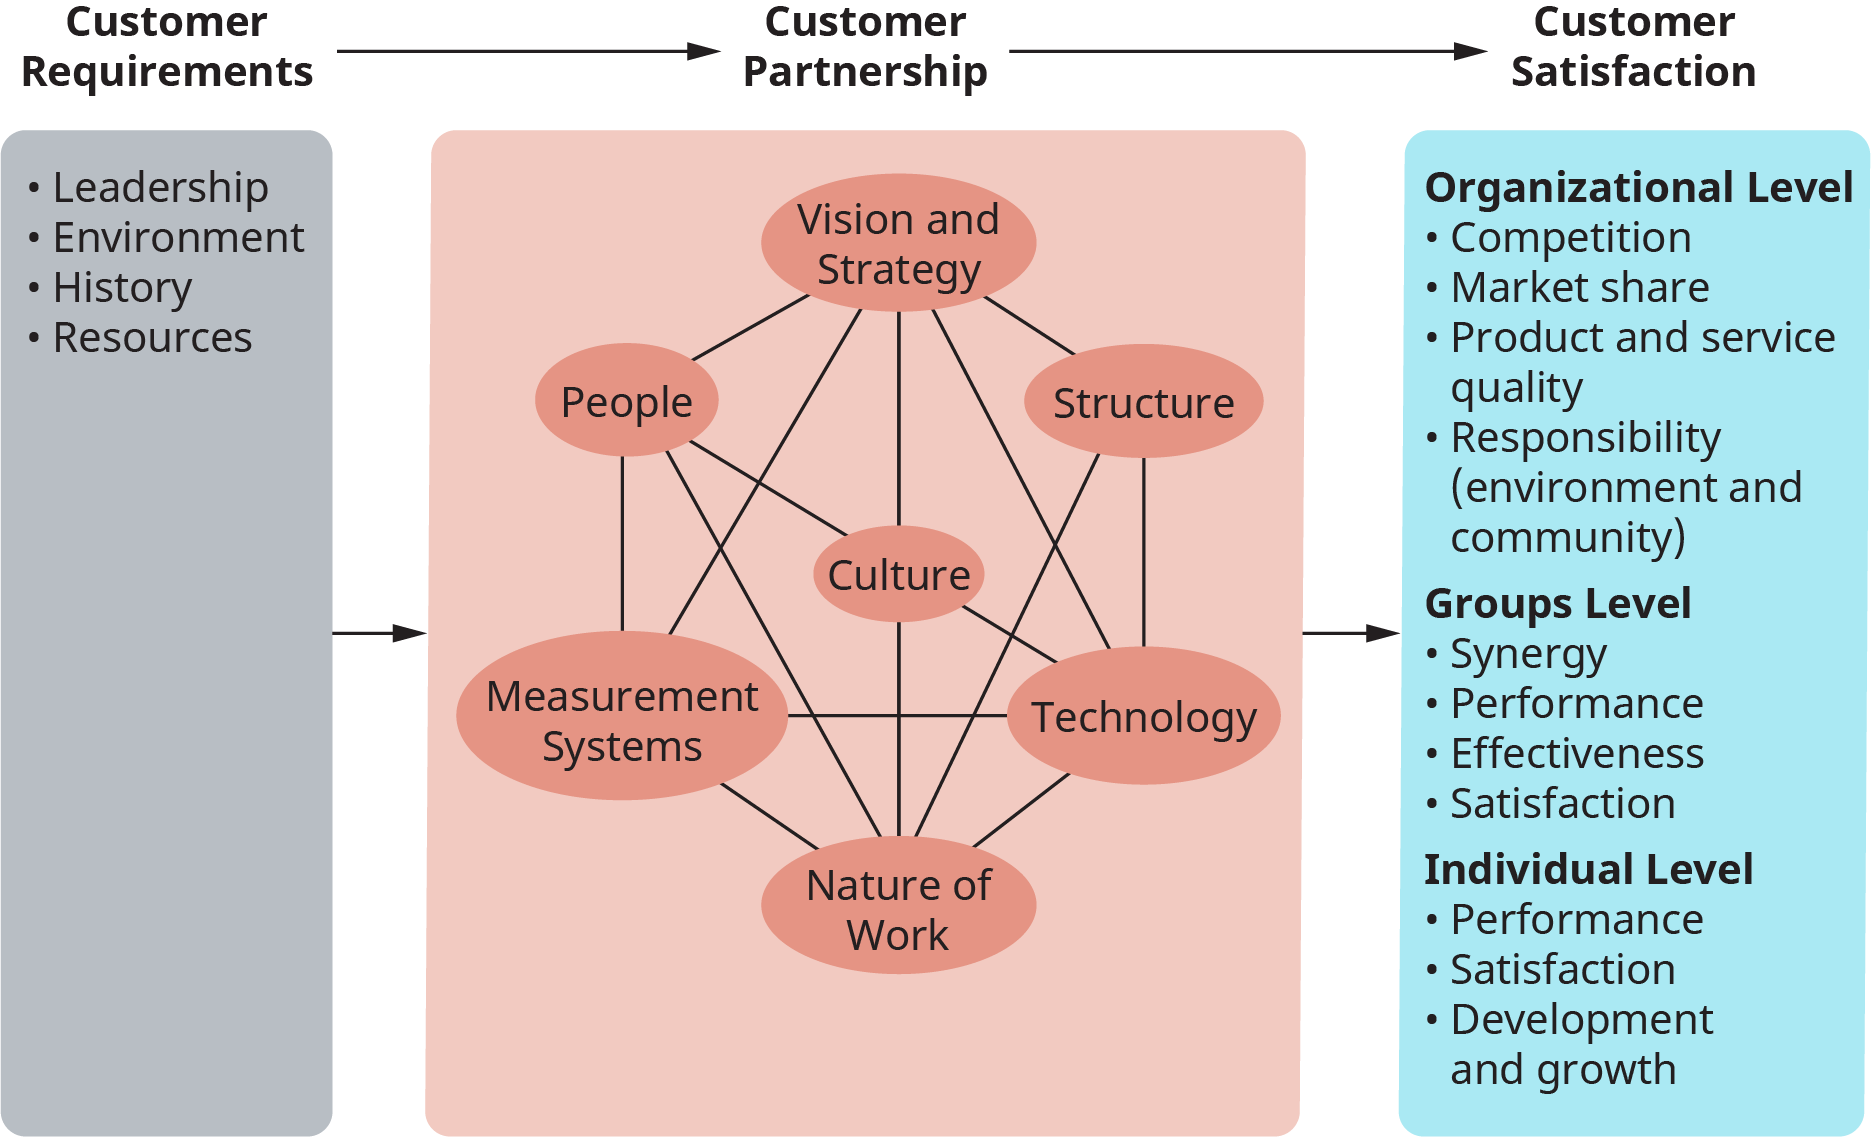 An illustration depicts the role of culture in organizational alignment.